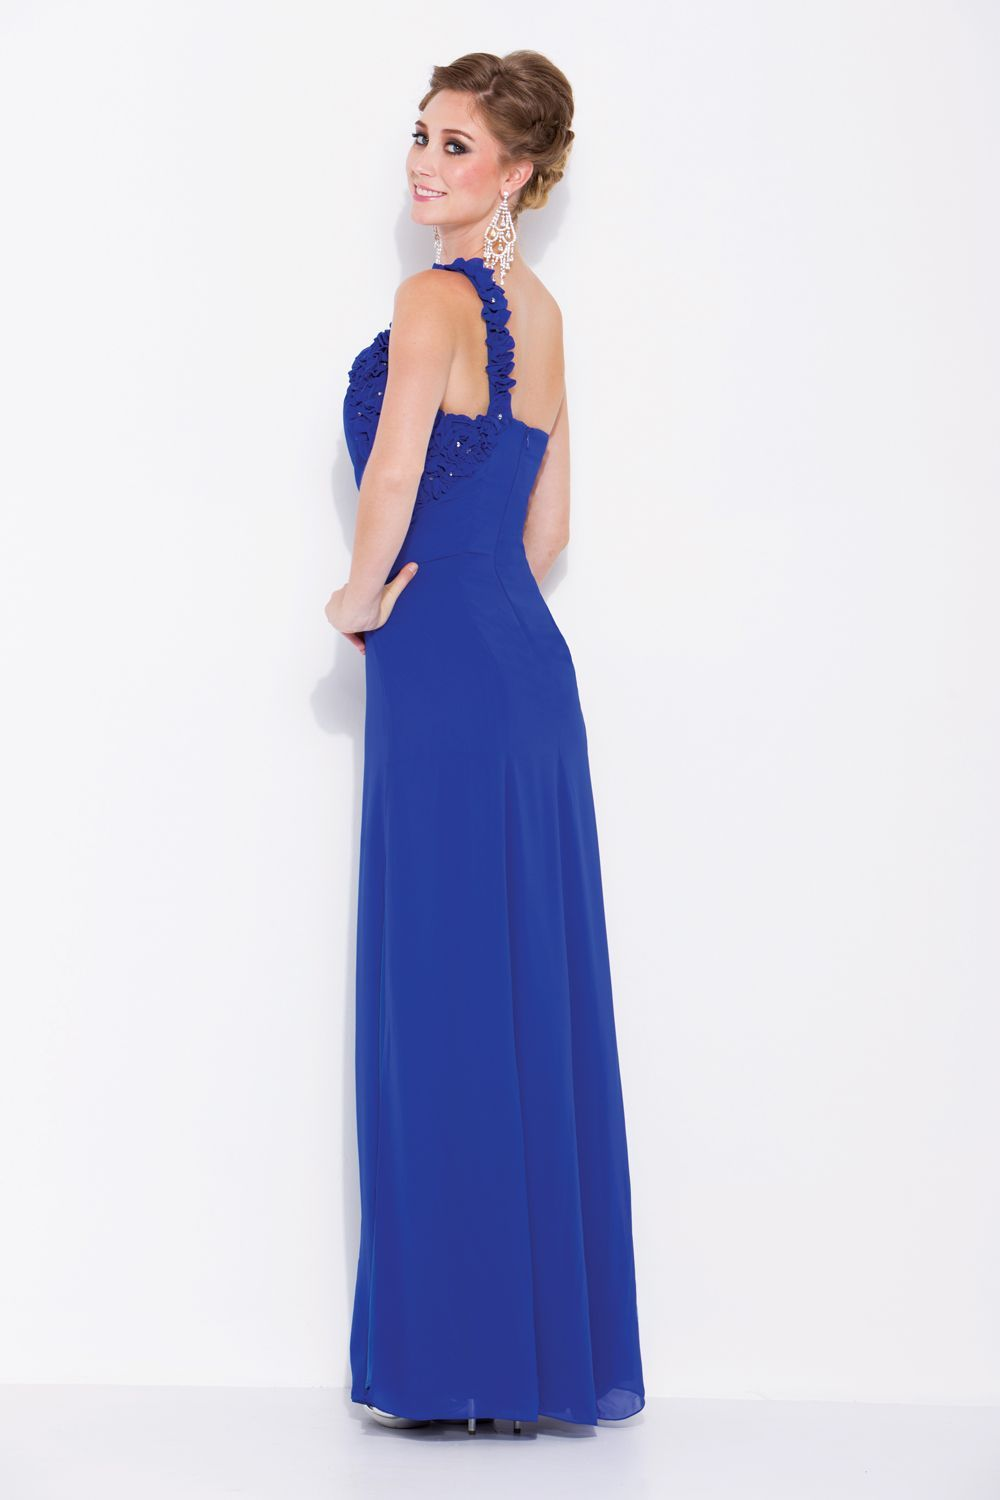 Royal blue bridesmaid dresses under 50 new royal blue one royal blue bridesmaid dresses under 50 new royal blue one shoulder long prom homecoming ombrellifo Gallery